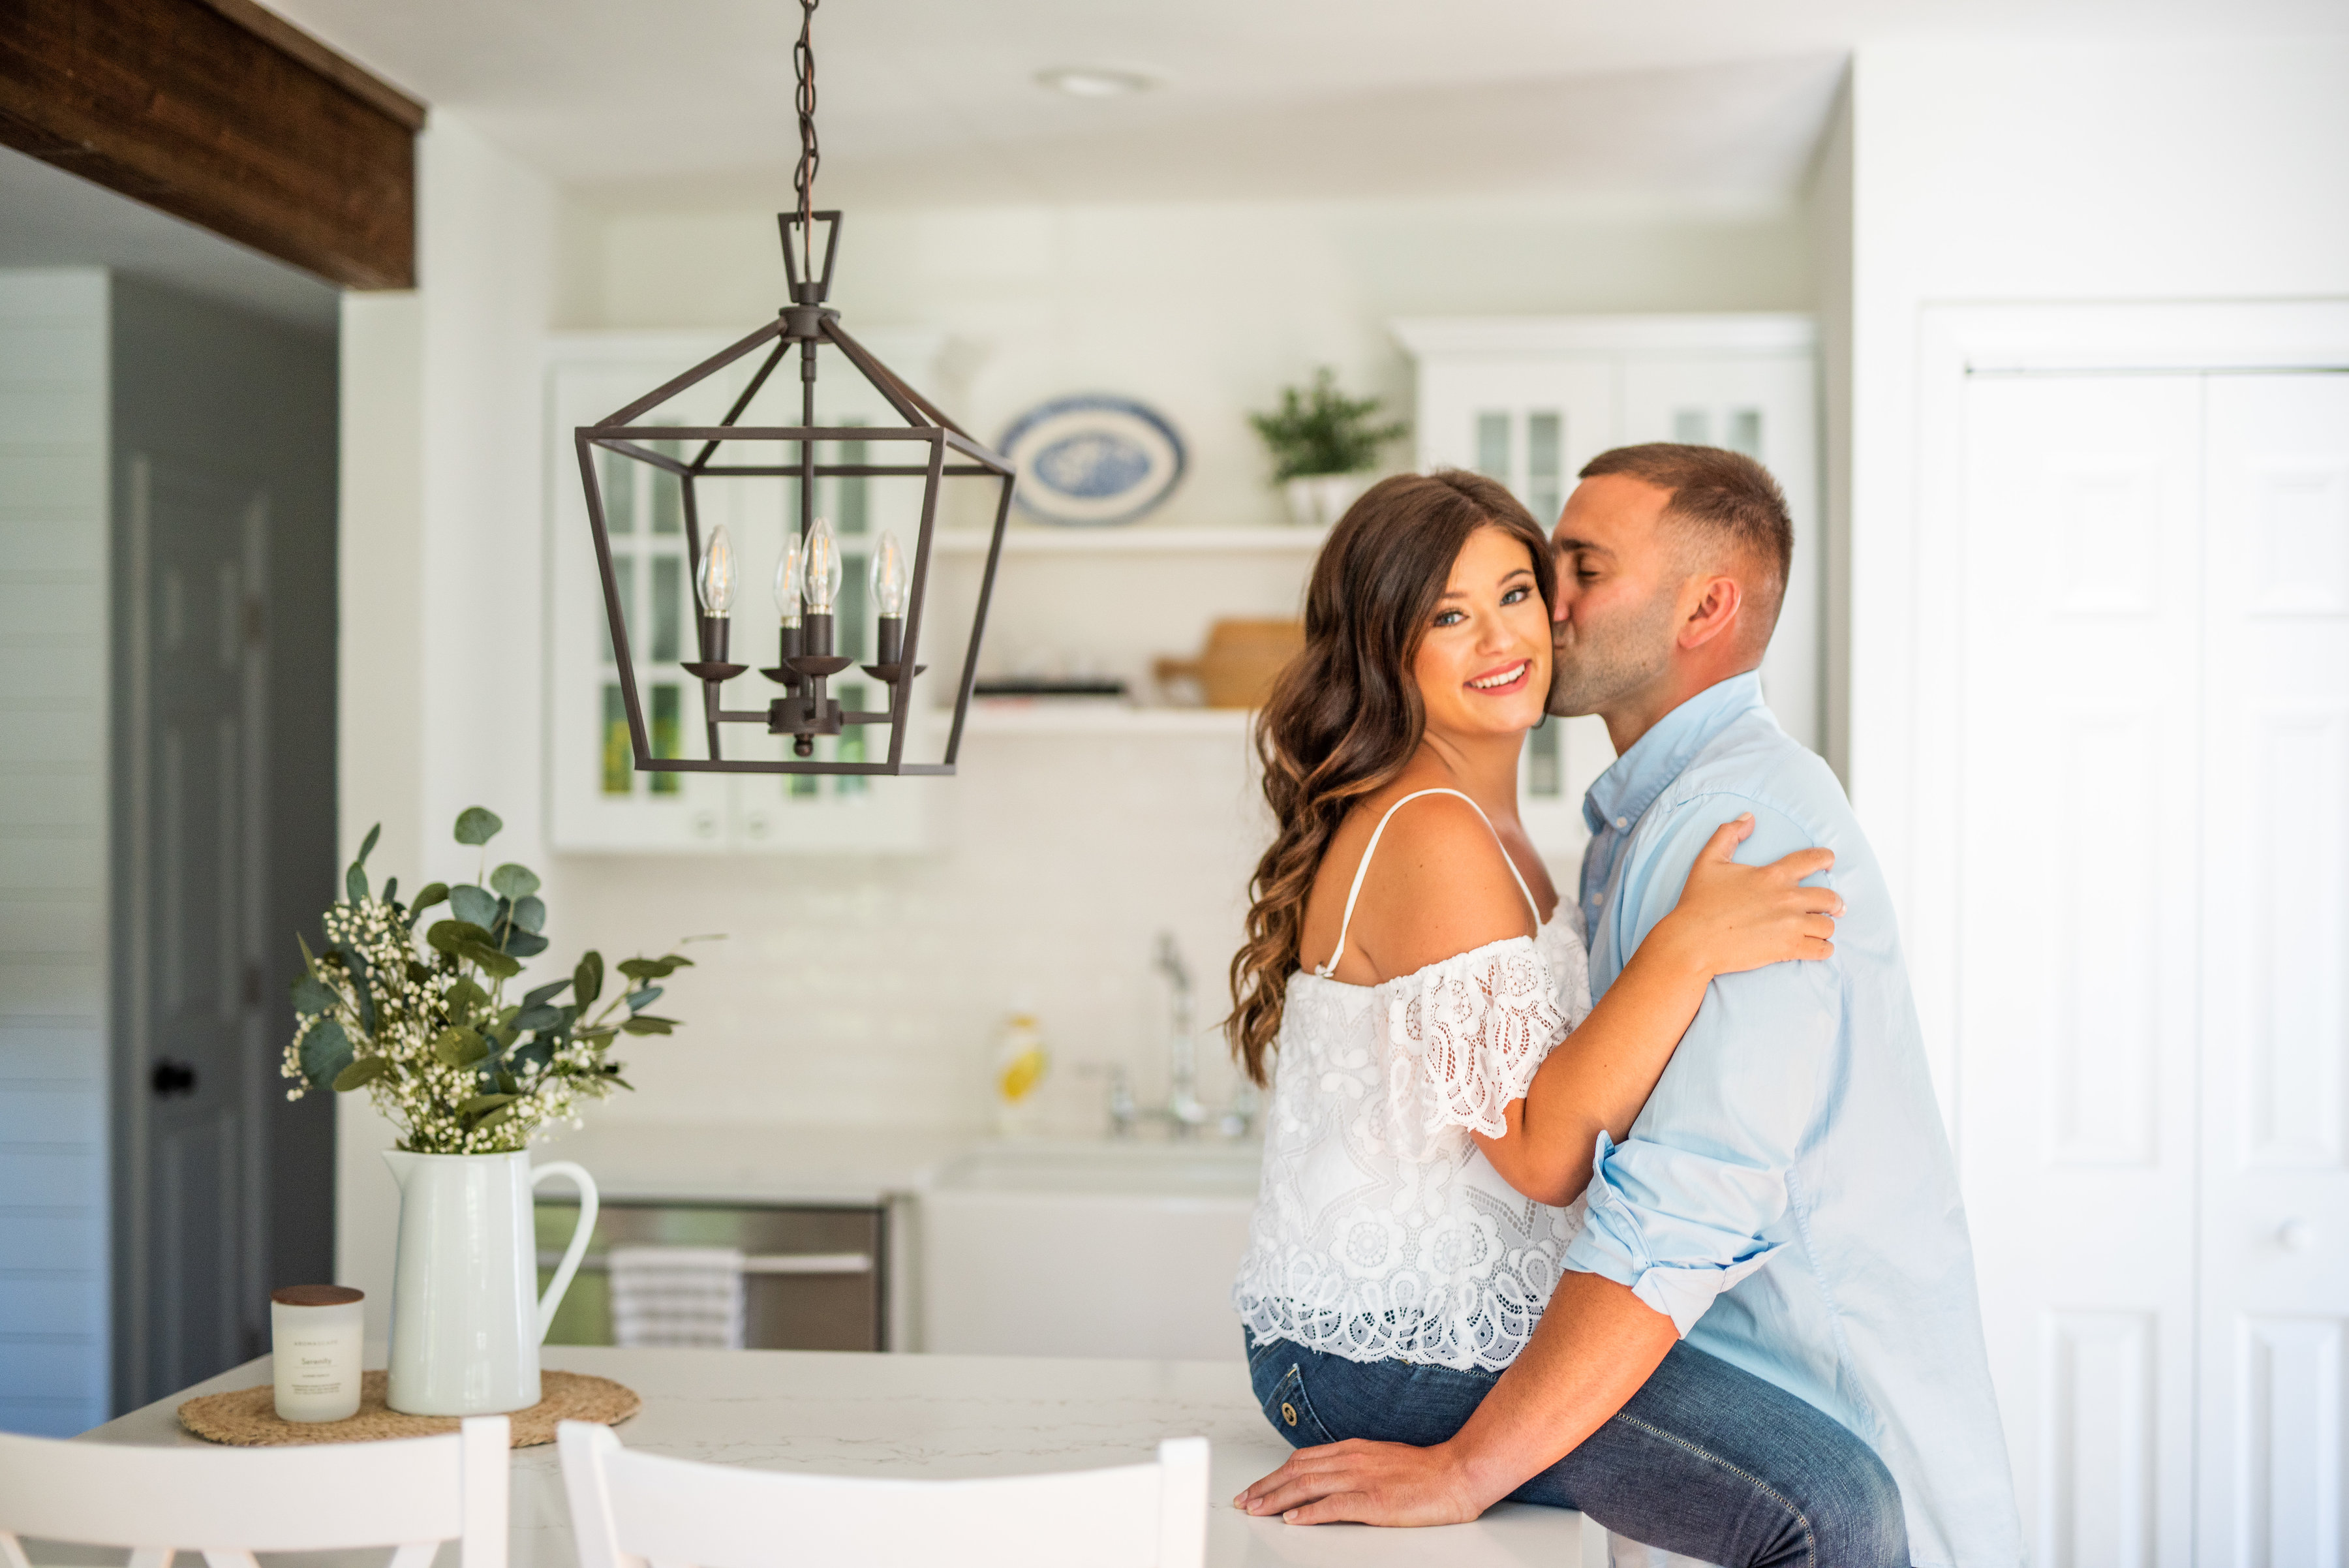 Calverton Engagement Shoot | Engagement Shoot at Home | Rustic Farrm Kitchen Engagement Shoot | North Forrk Wedding Photographer13